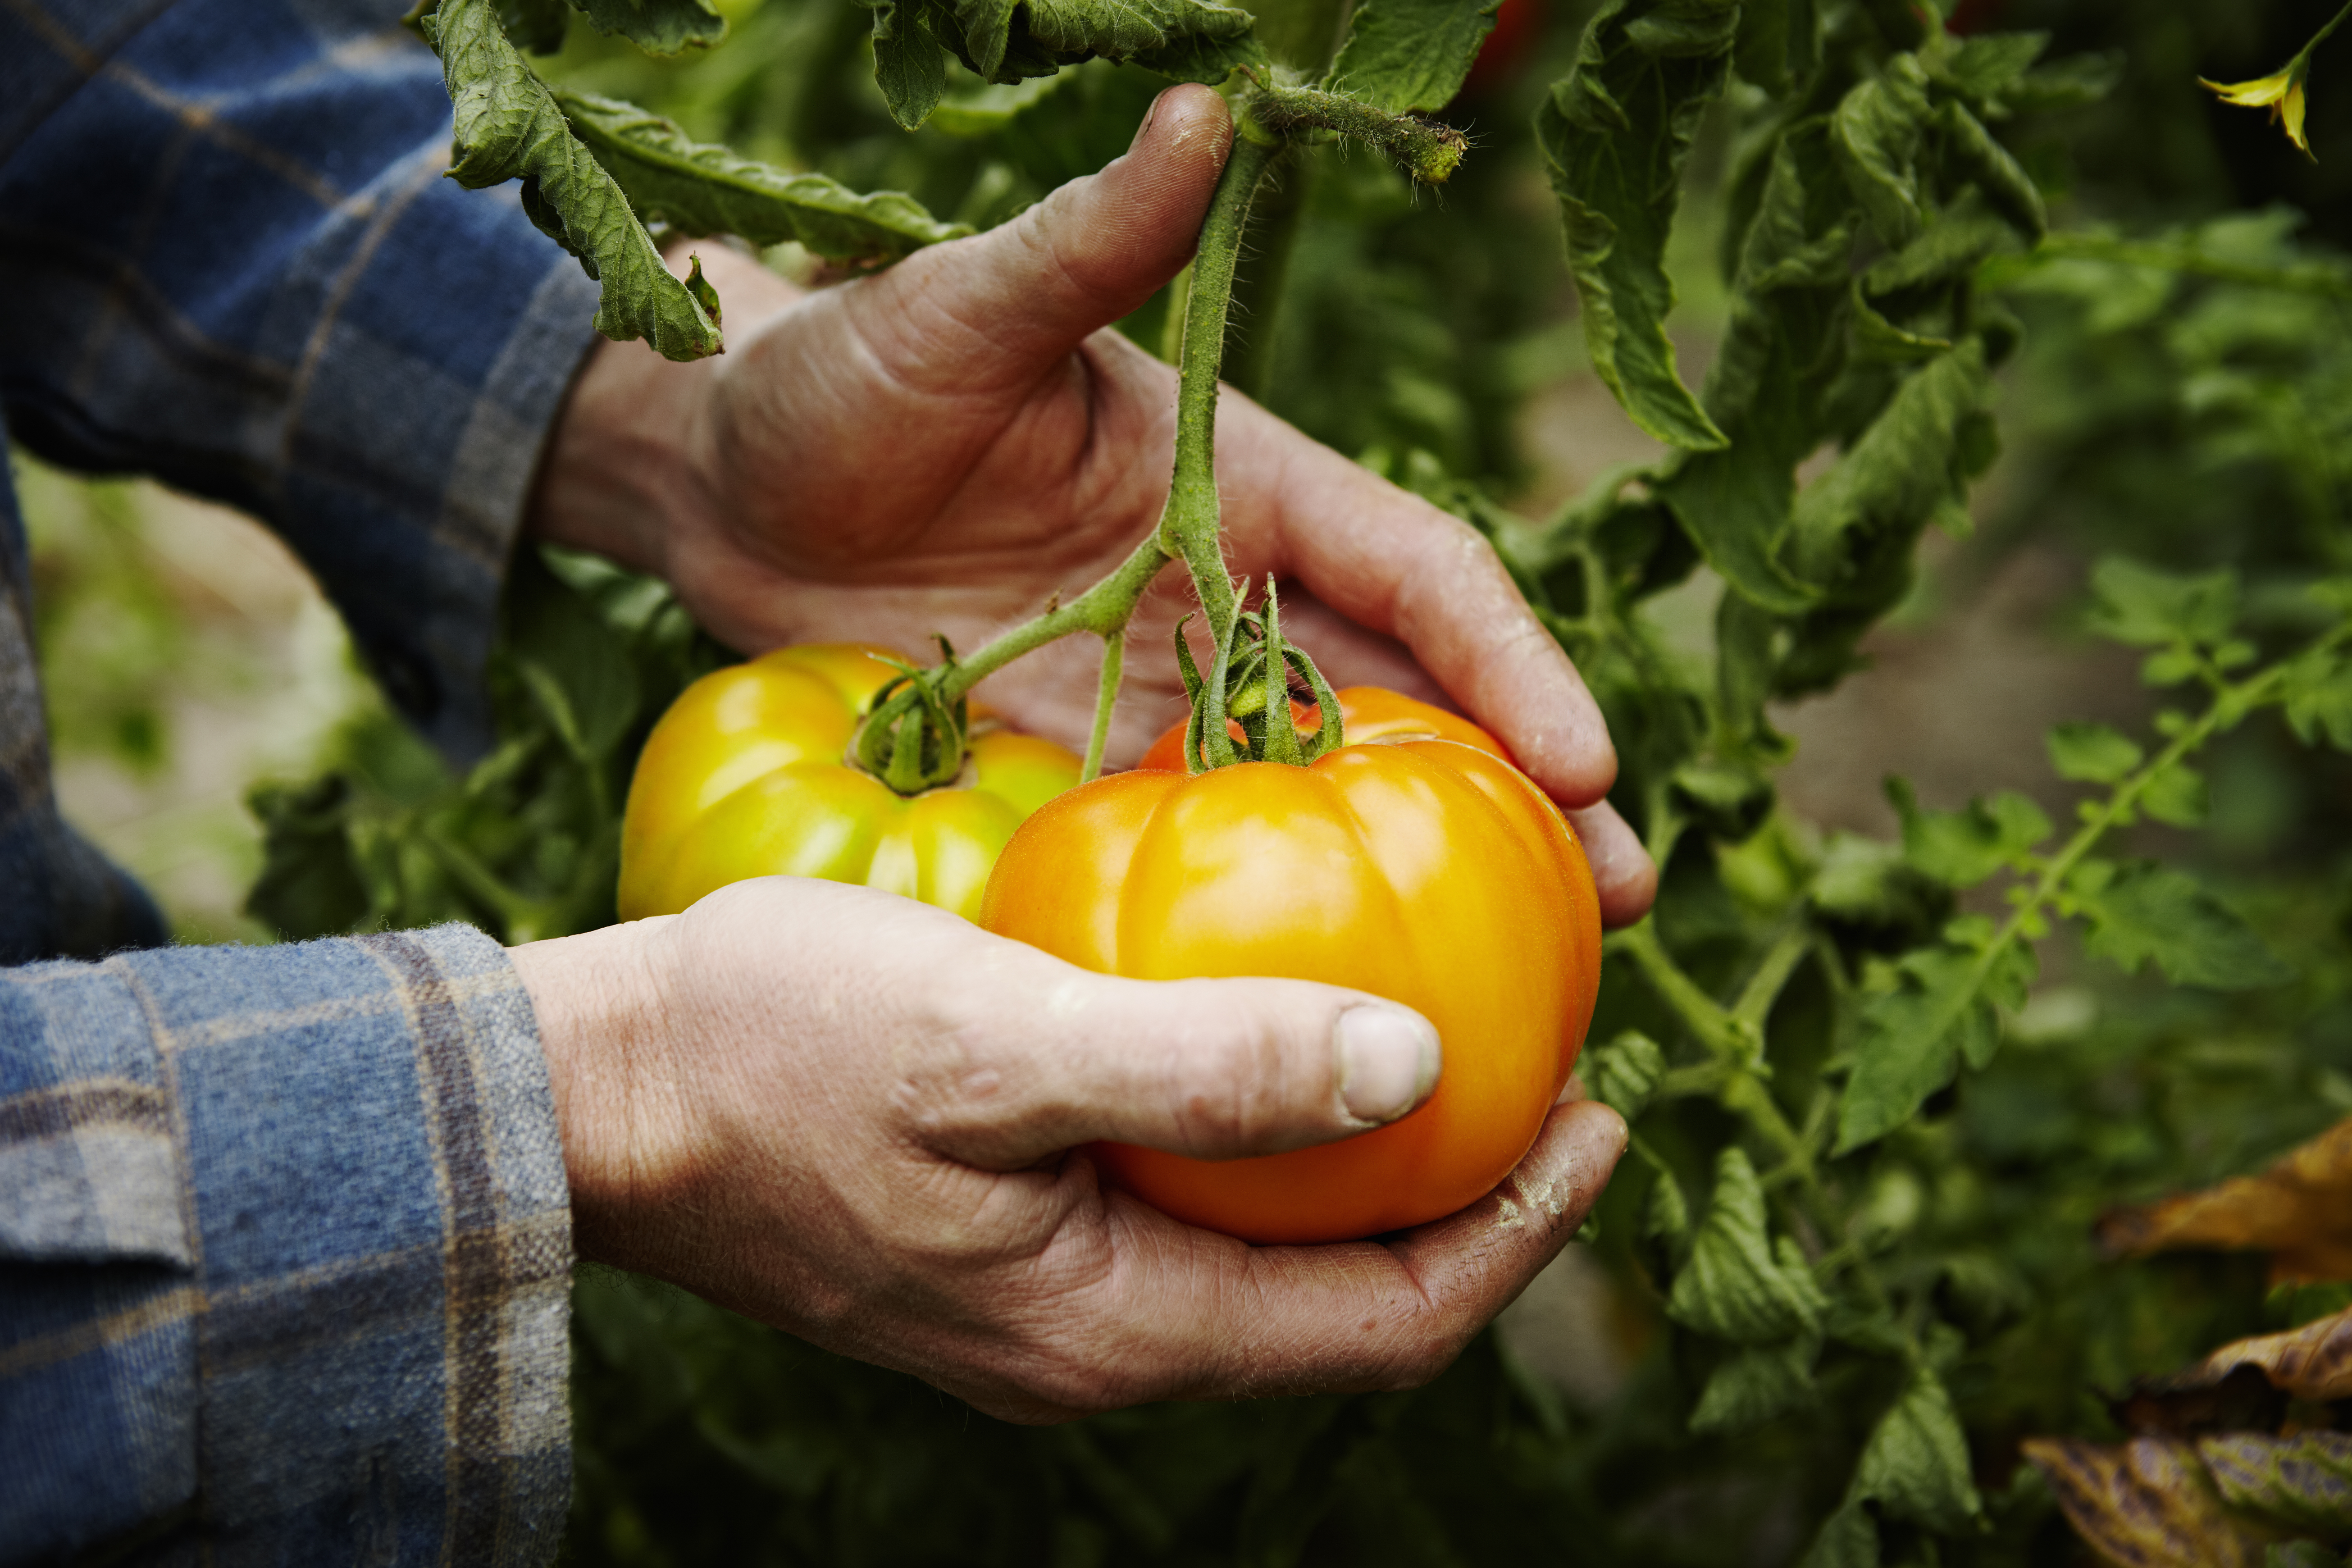 A farmer cradles two organic heirloom tomatoes on the vine in his hands.